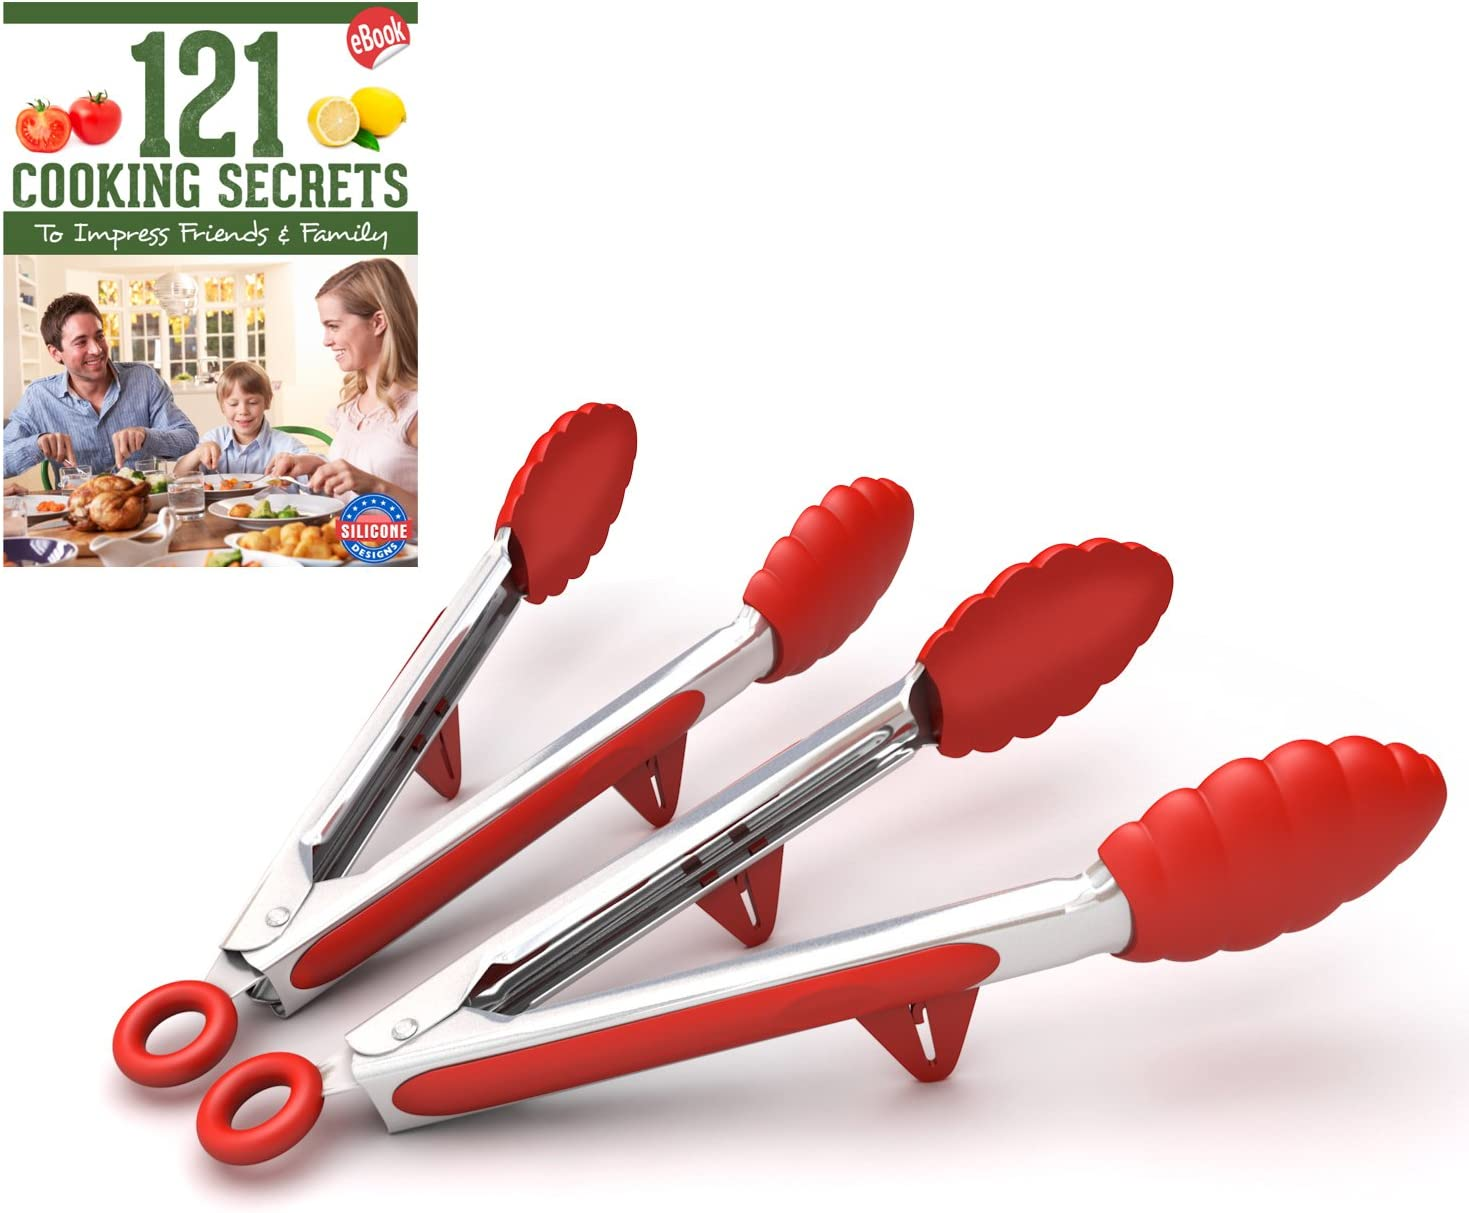 Kitchen Tongs with Built-in Stand, Set of 2, Red, 10.5 Inch, Stainless Steel and Silicone, Cooking Utensils, Free Recipe Ebook